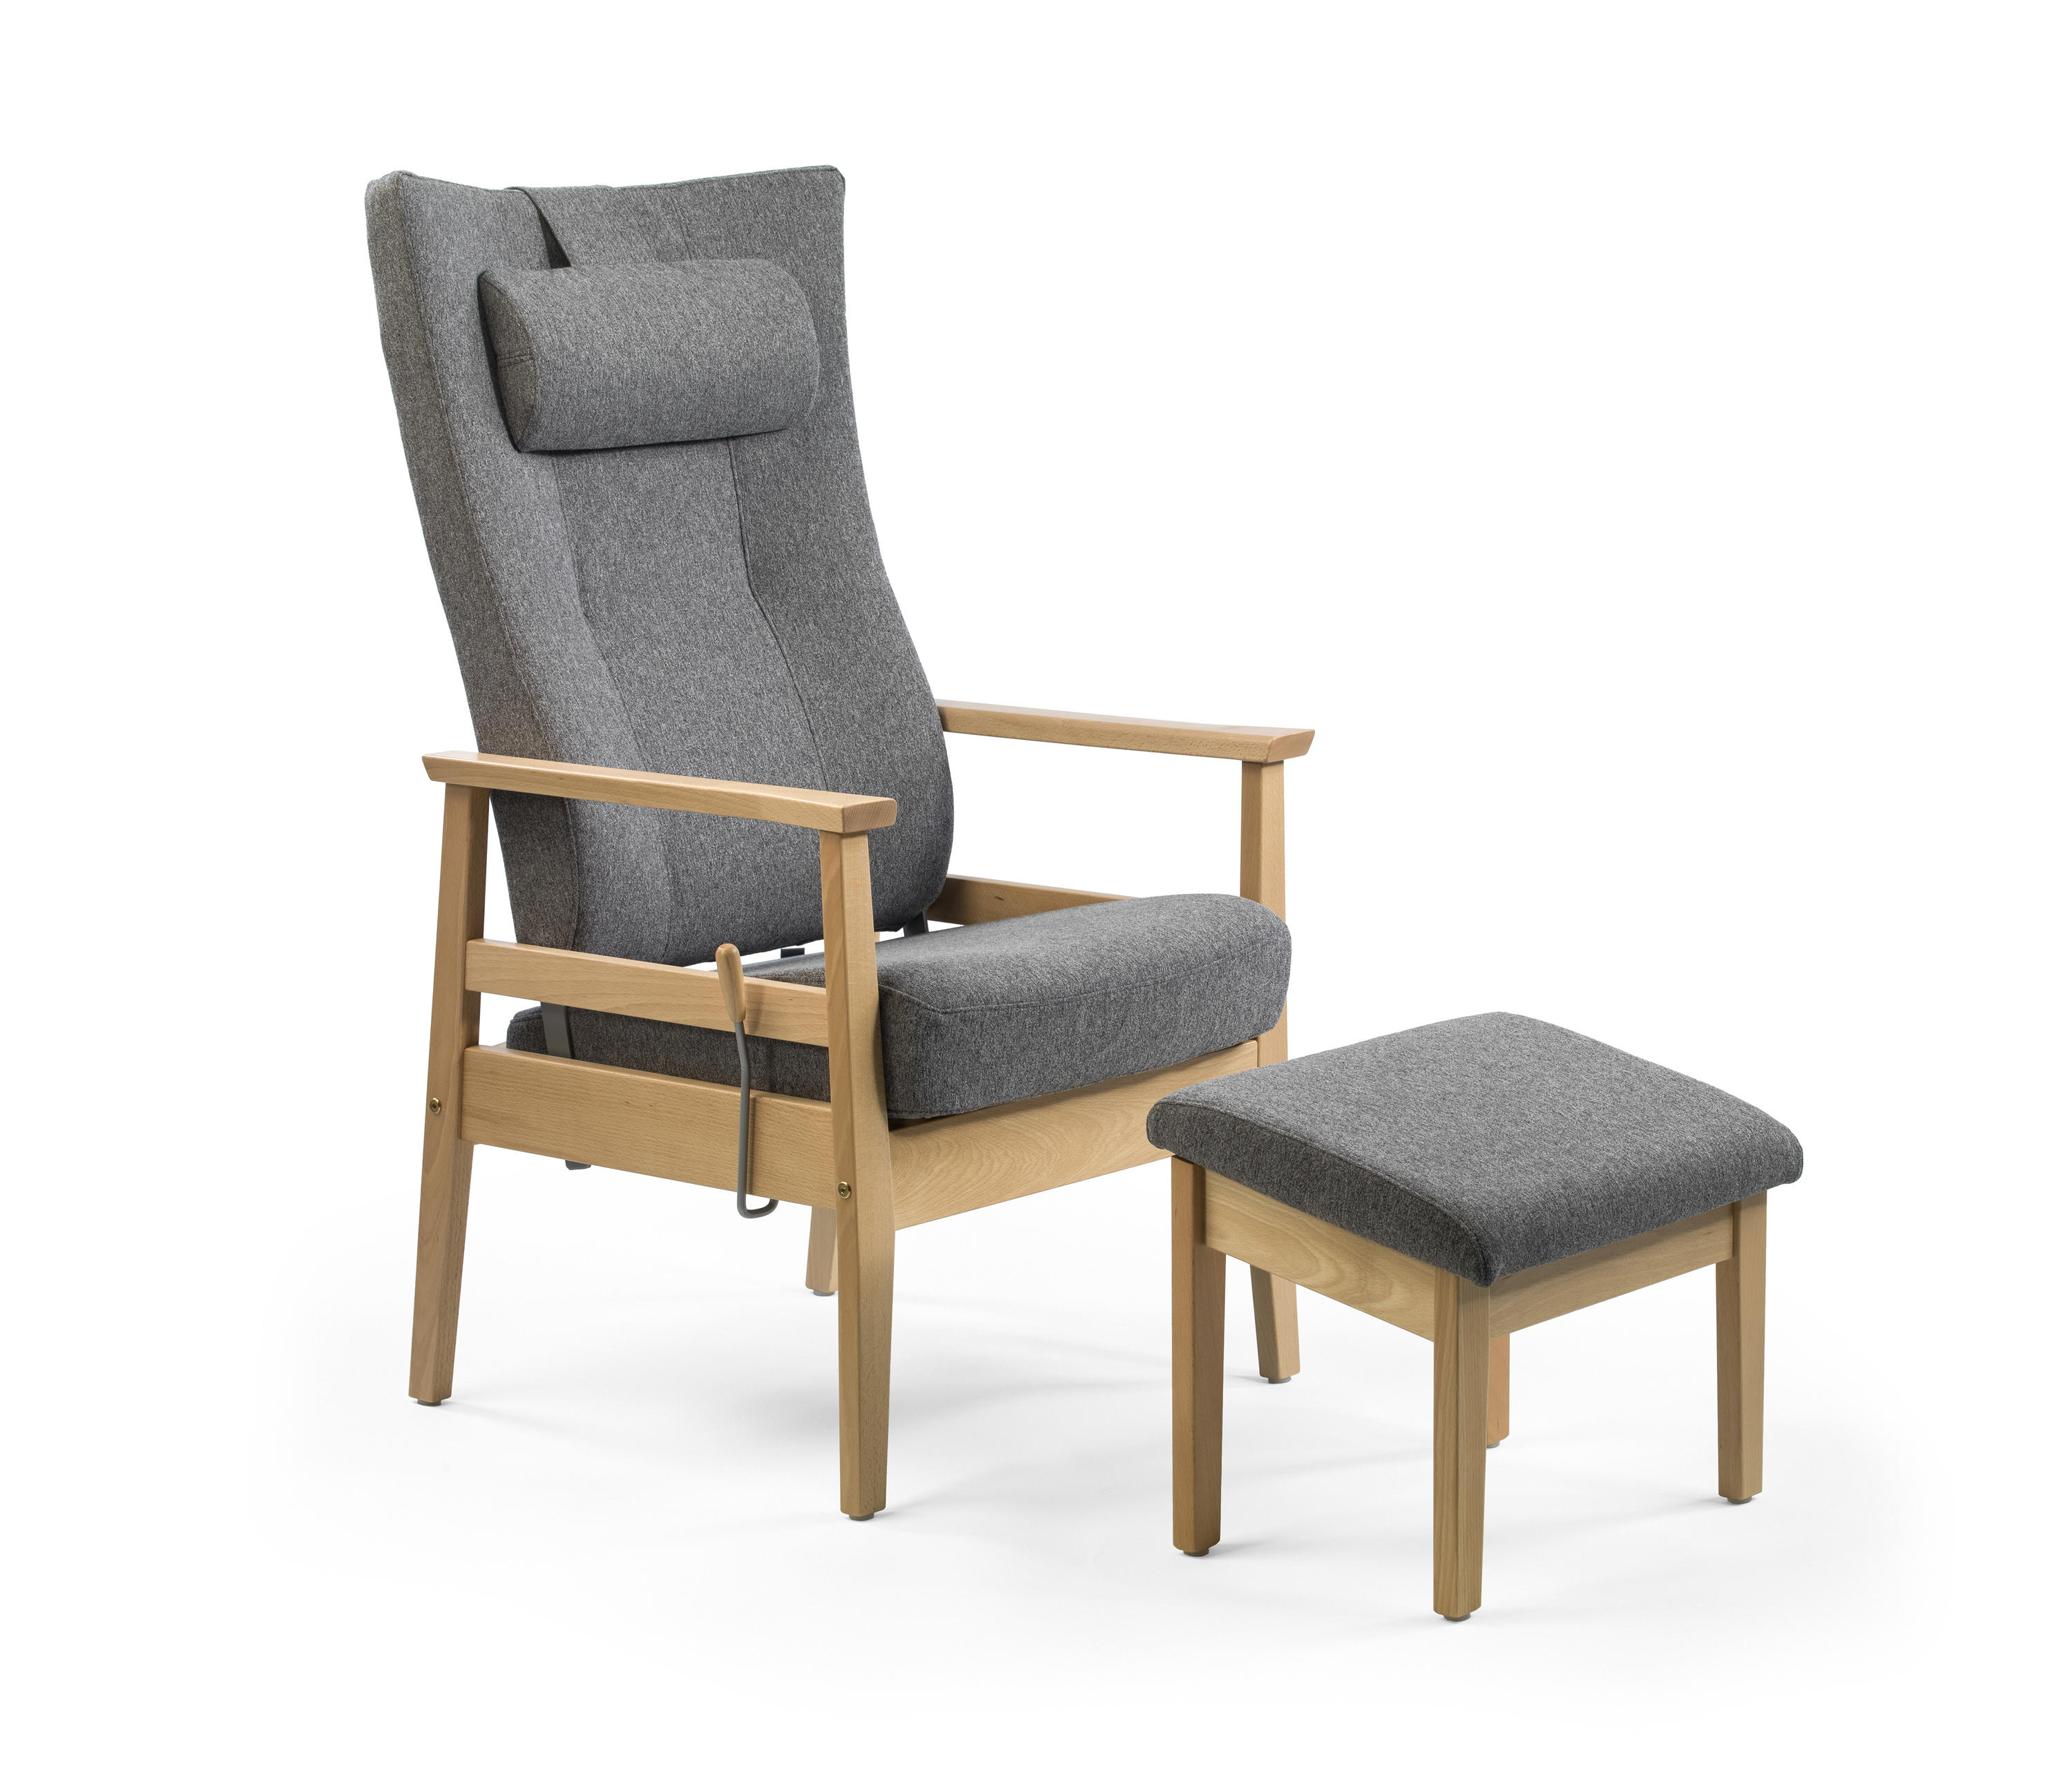 elderly chairs patterned recliner chair bo armchairs from helland architonic